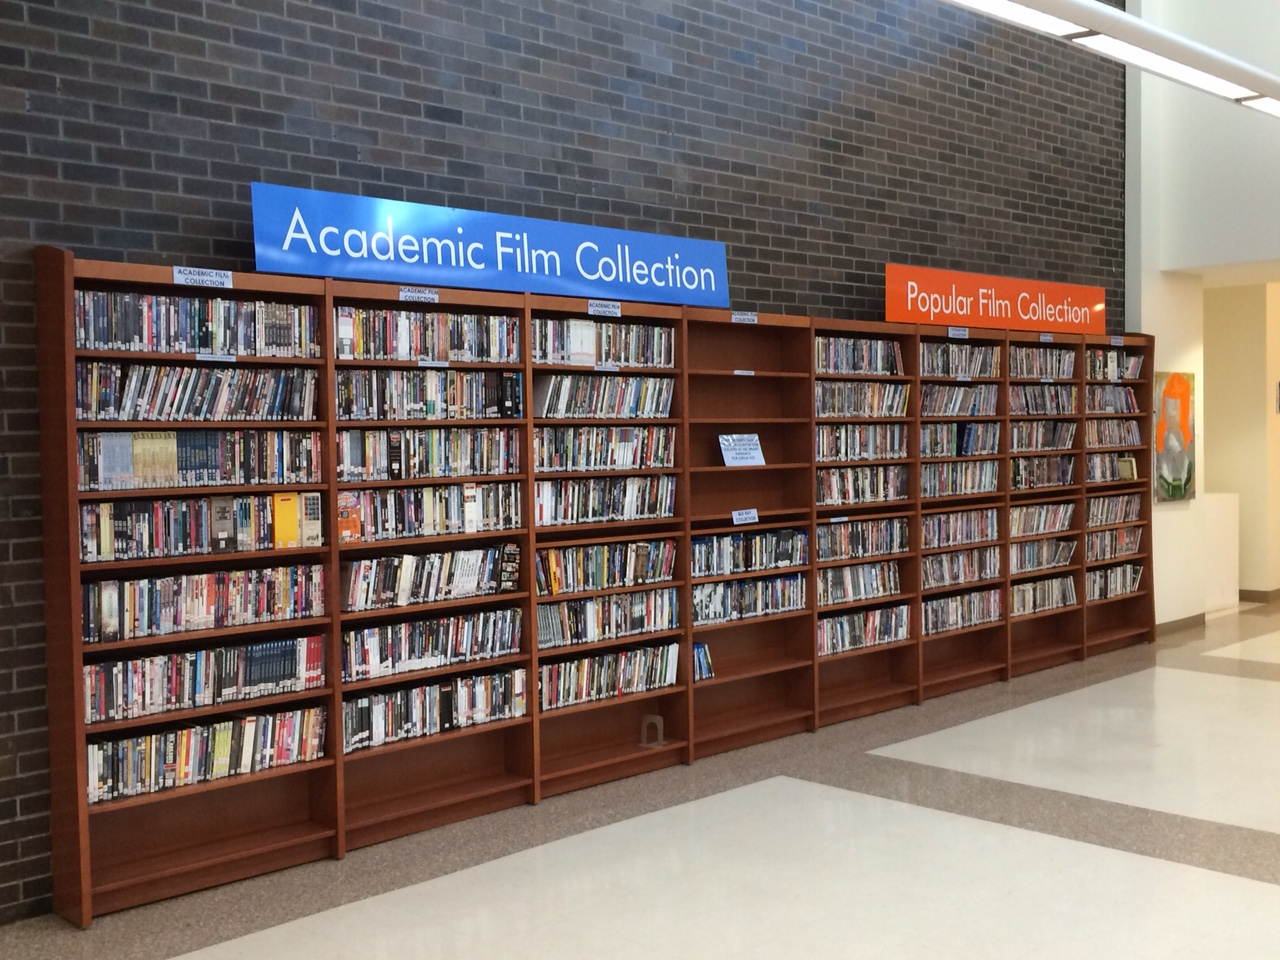 Library's film collection shelves.